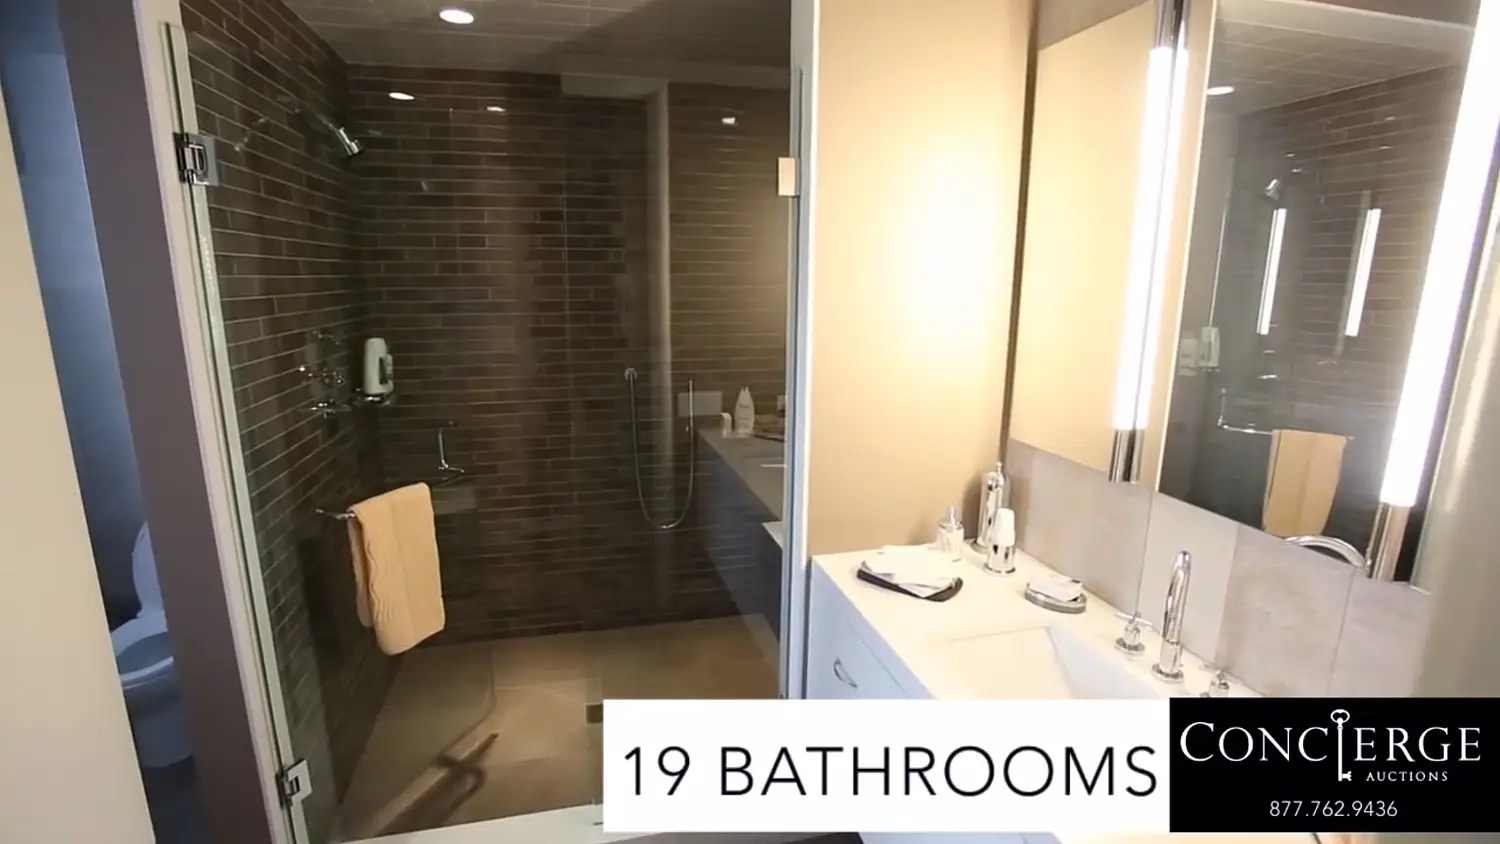 And 19 bathrooms.